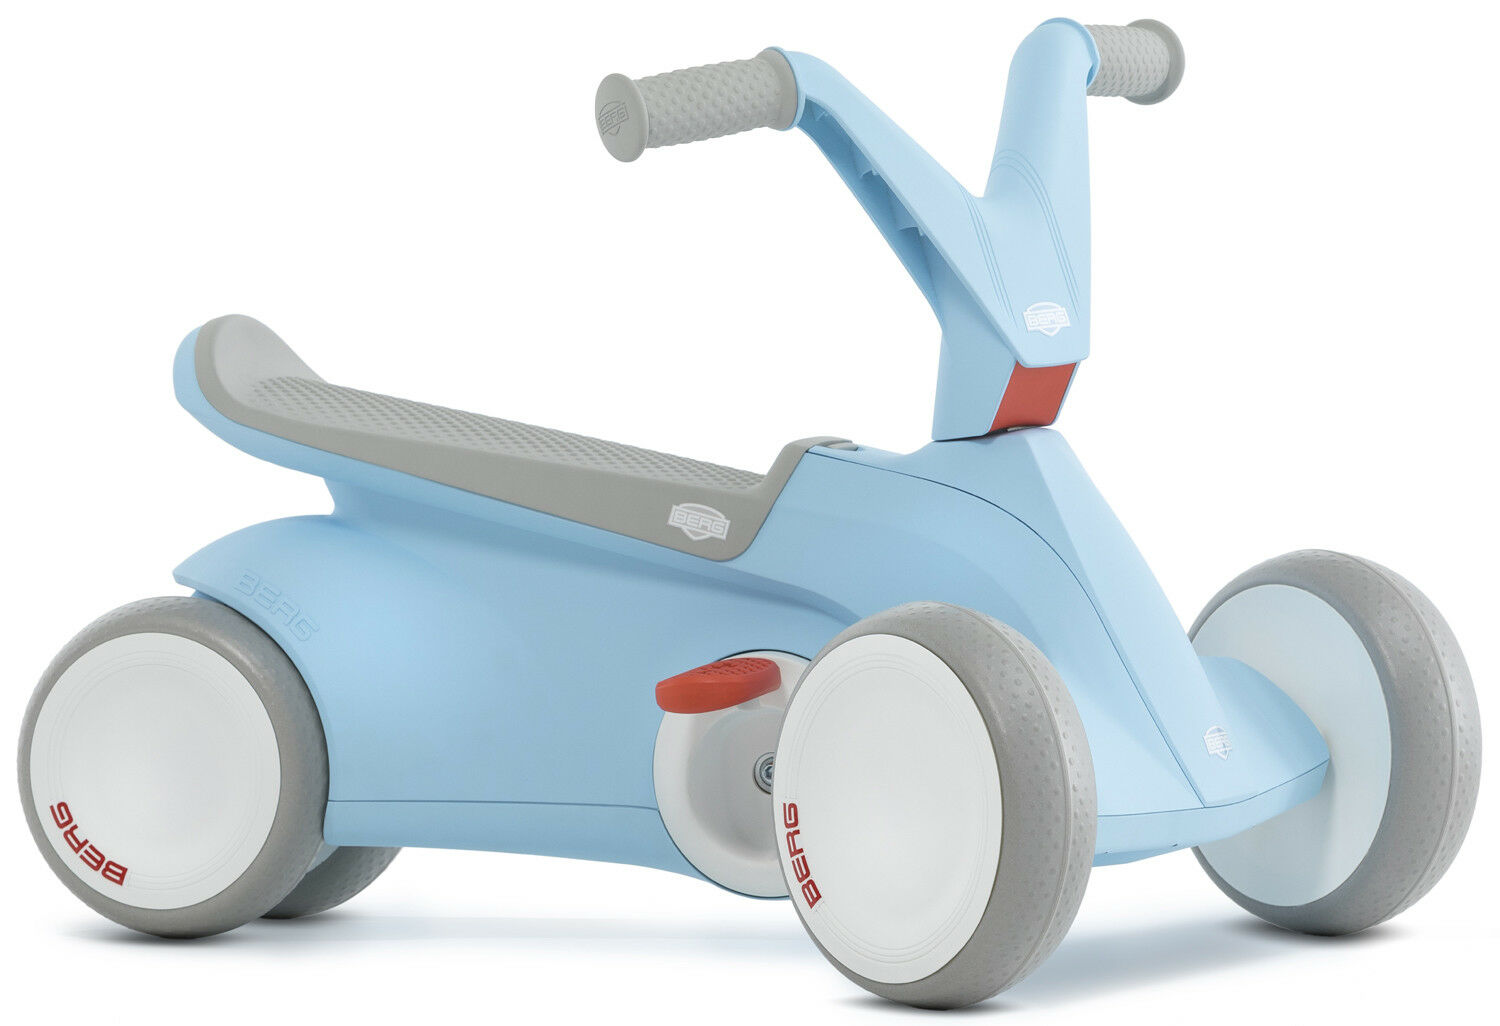 Berg Go2 Kids  Pedal Car Go Kart Ride On 1 - 3 Years bluee NEW  perfect